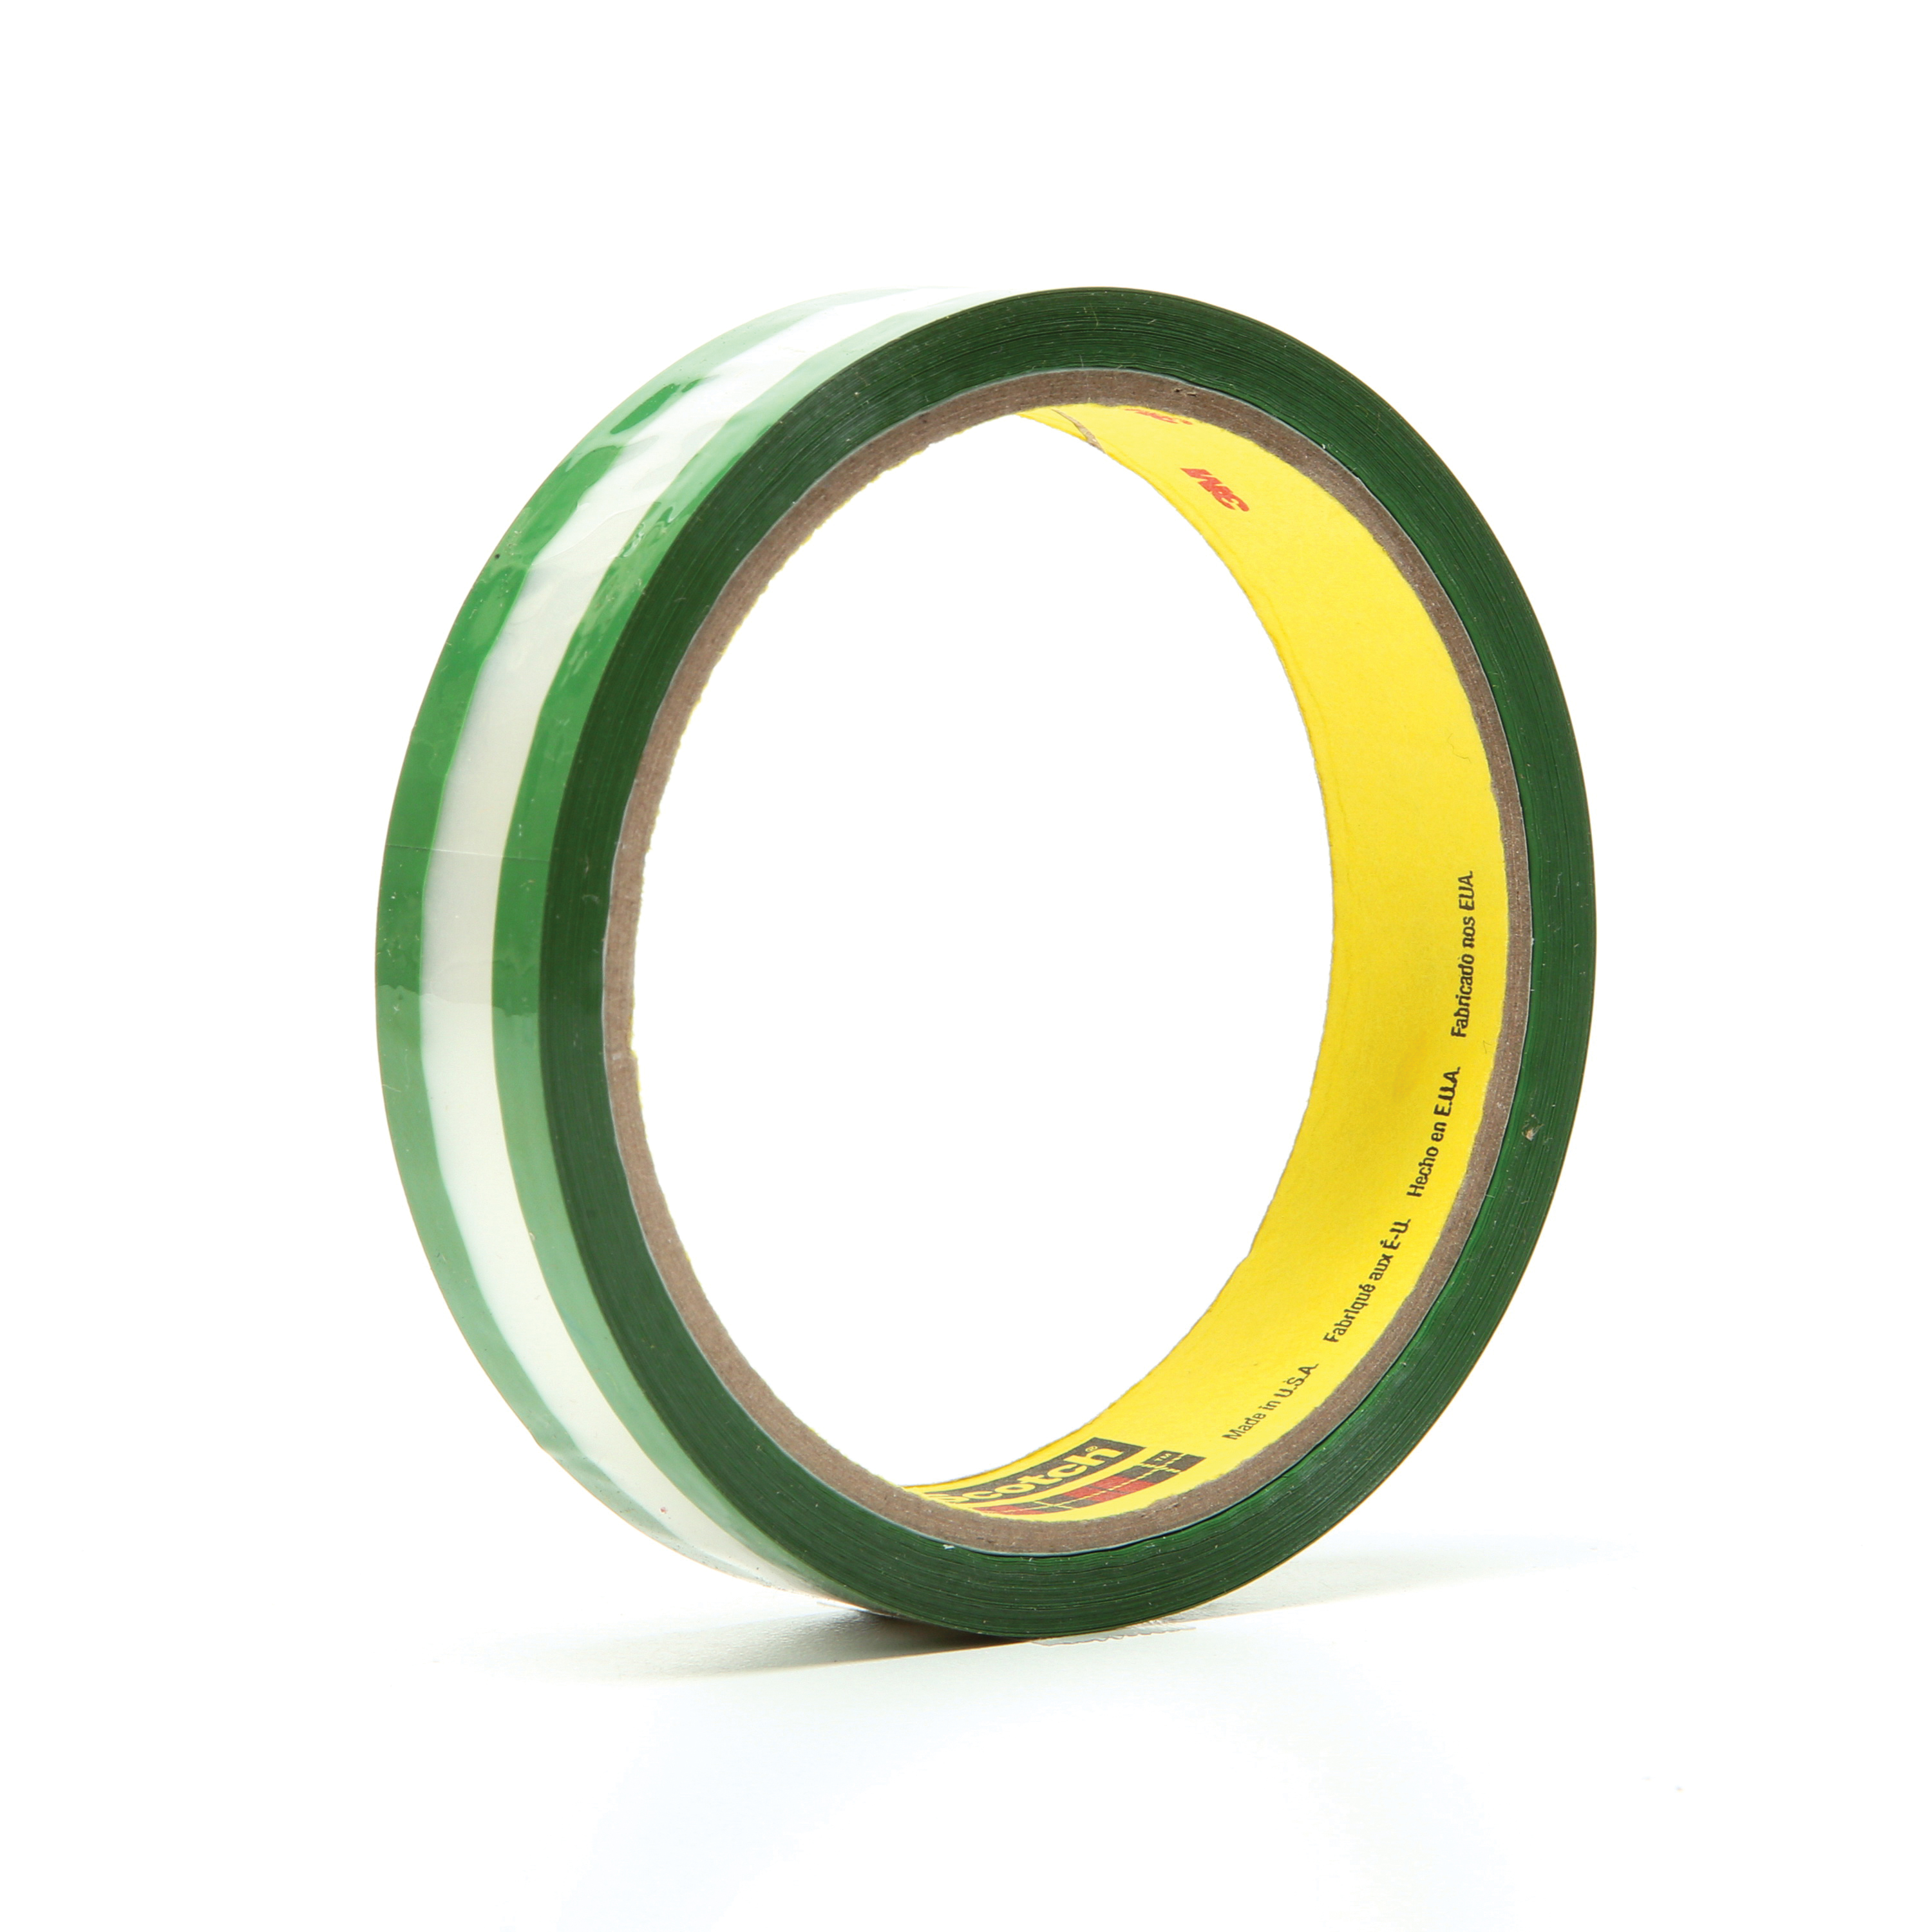 3M™ 021200-03507 Riveters Film Tape, 36 yd L x 3/4 in W, 1.7 mil THK, Rubber Adhesive, 1 mil Transparent Polyester Backing, Green